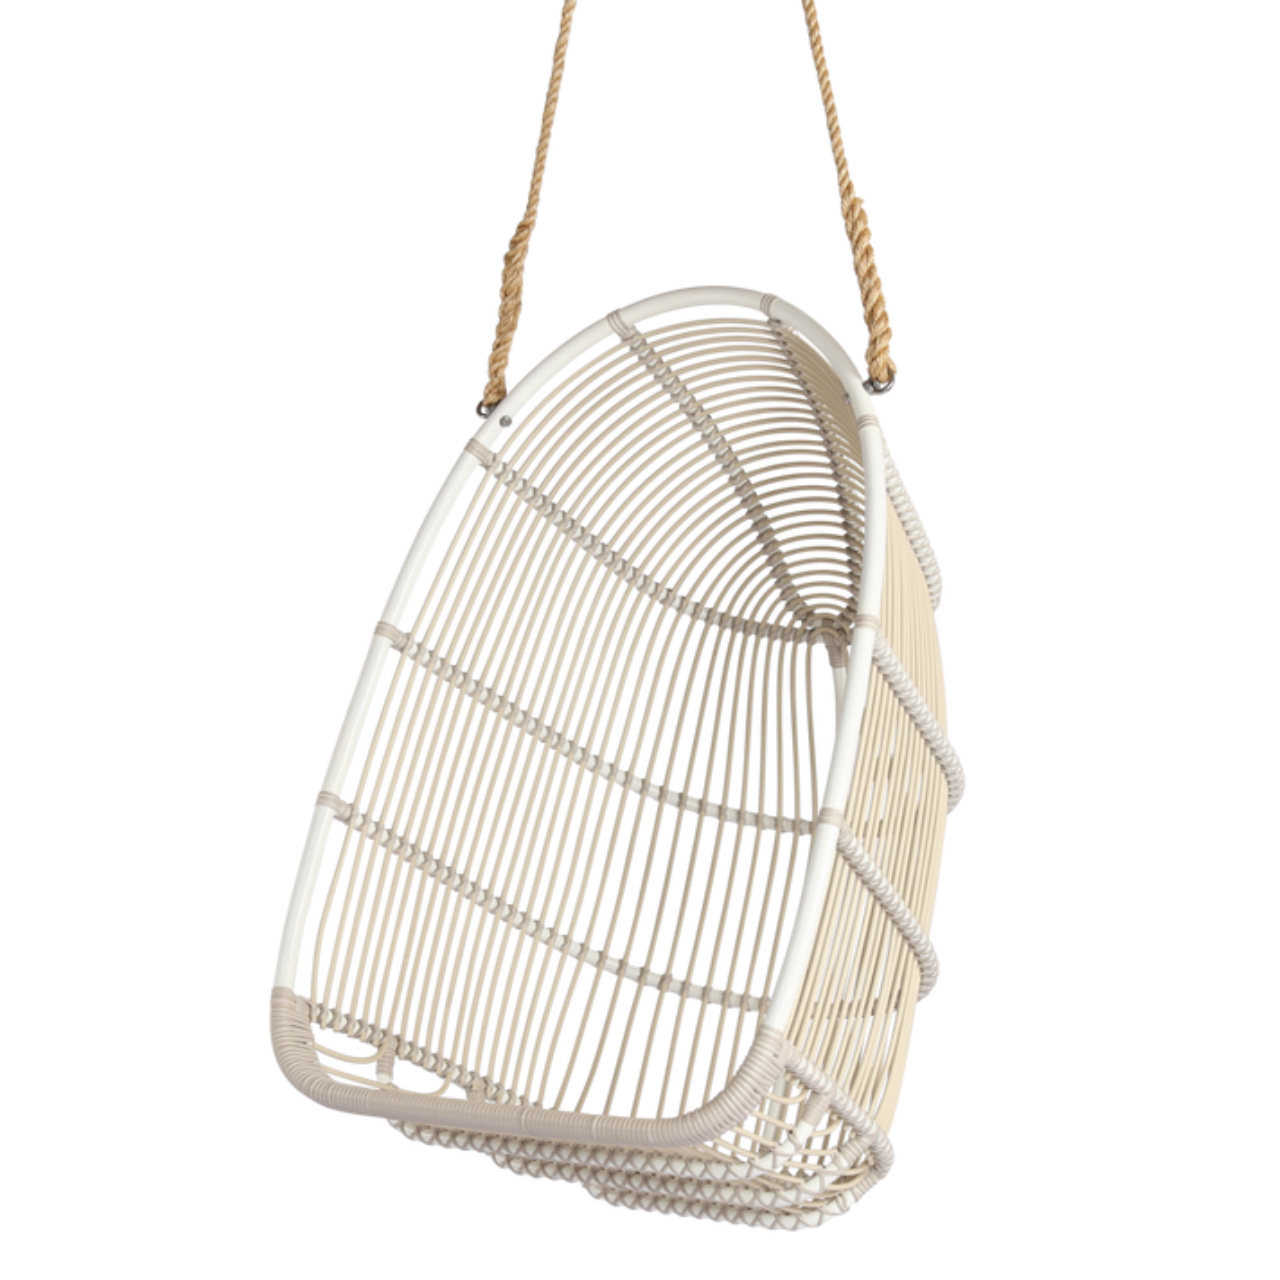 outdoor-swing-chair-exterior-dove-white-sika-design-review